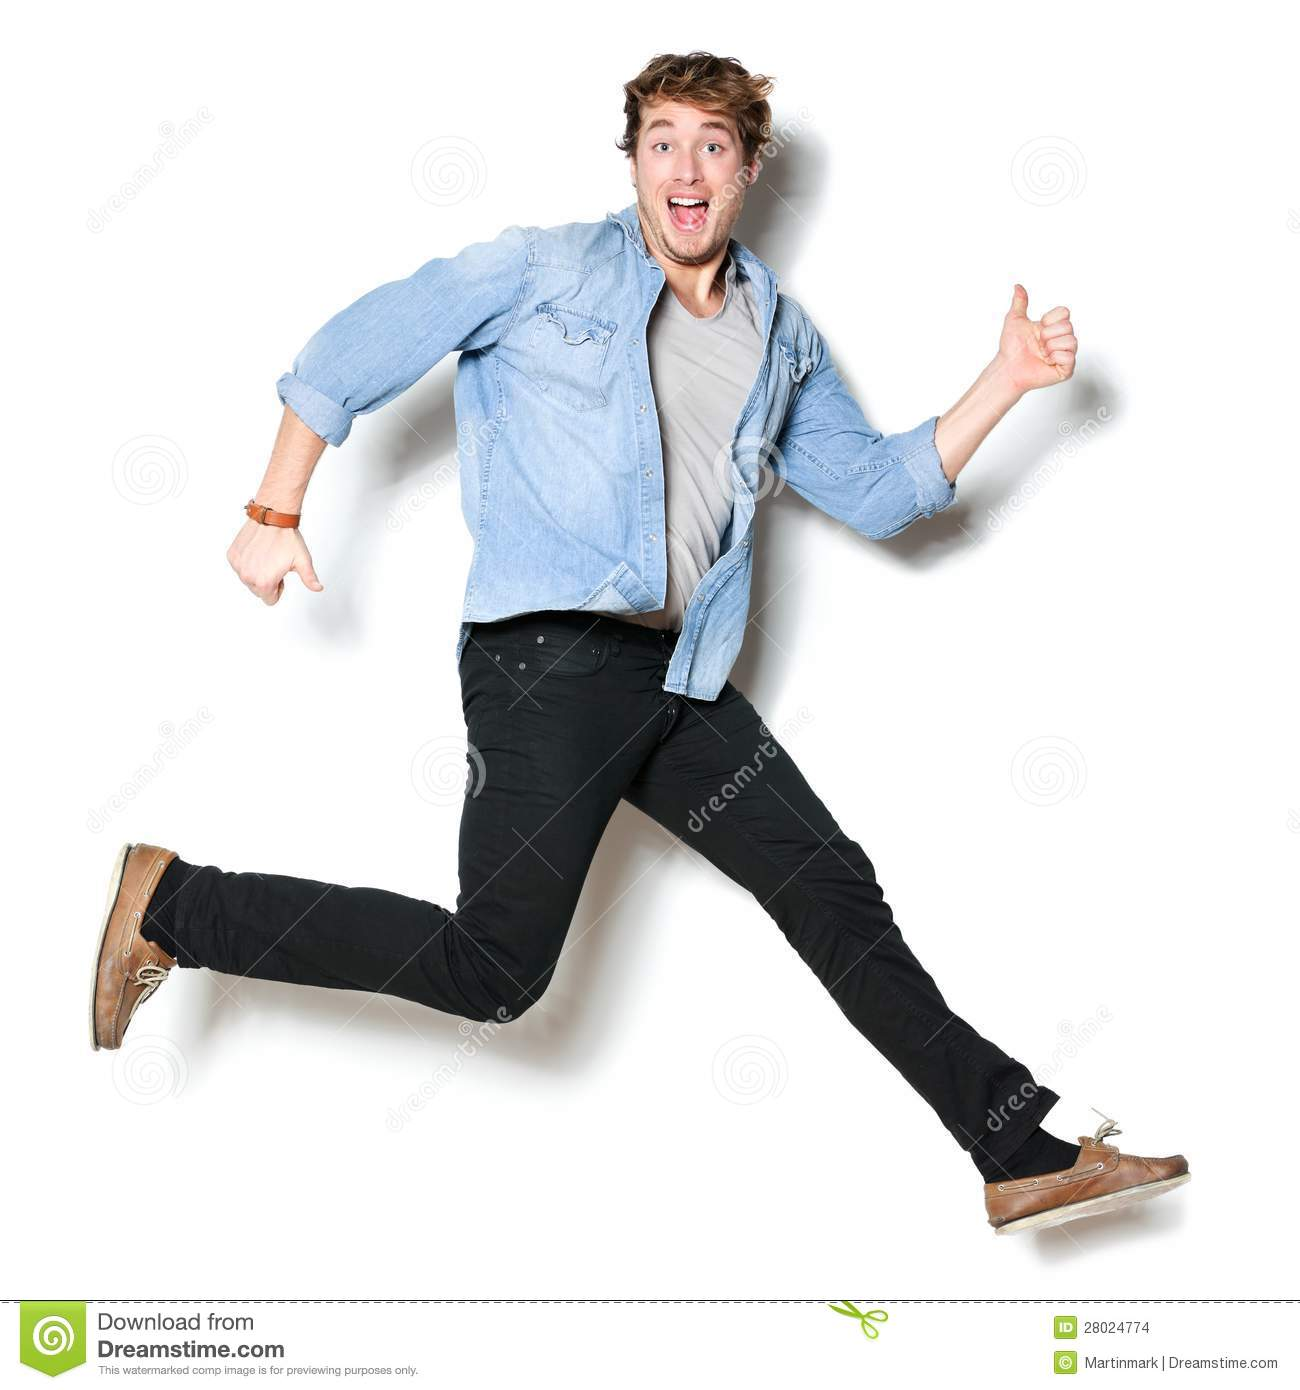 jumping-man-happy-excited-28024774.jpg